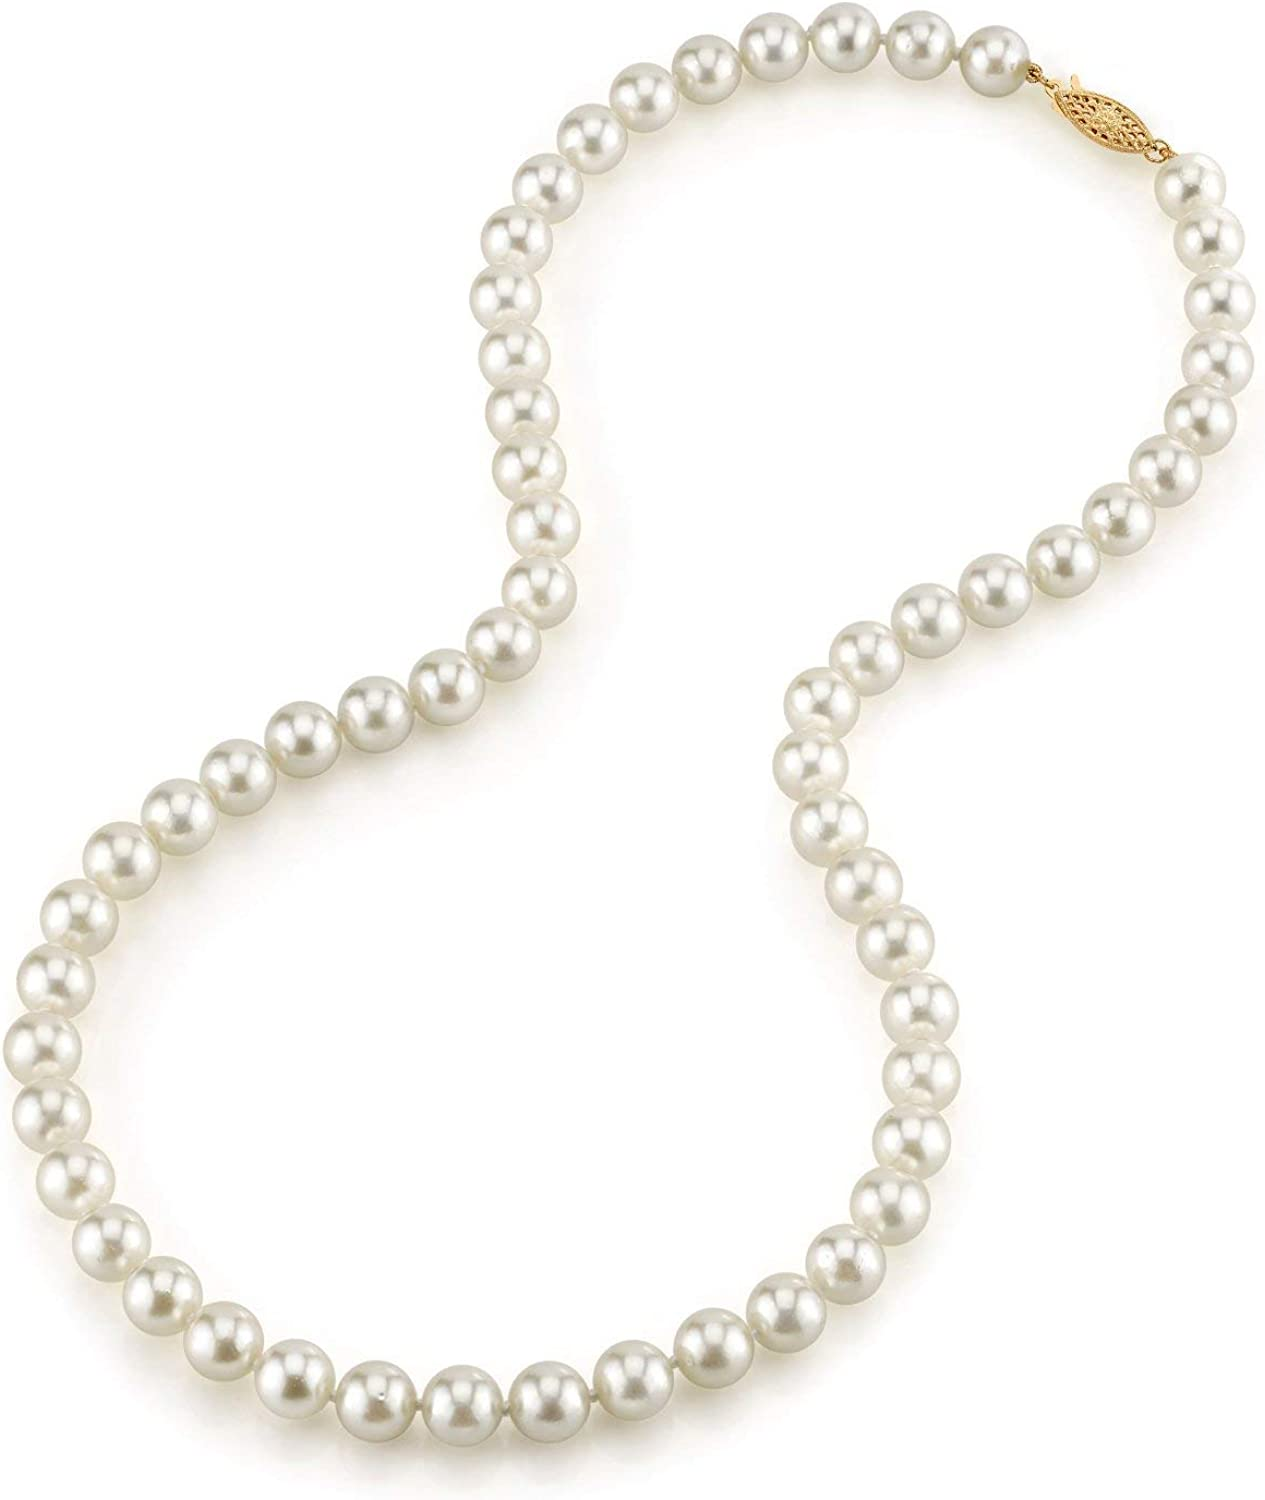 THE Max 53% OFF PEARL SOURCE 14K Gold Genuine Round 5.0-5.5mm White half Japanese